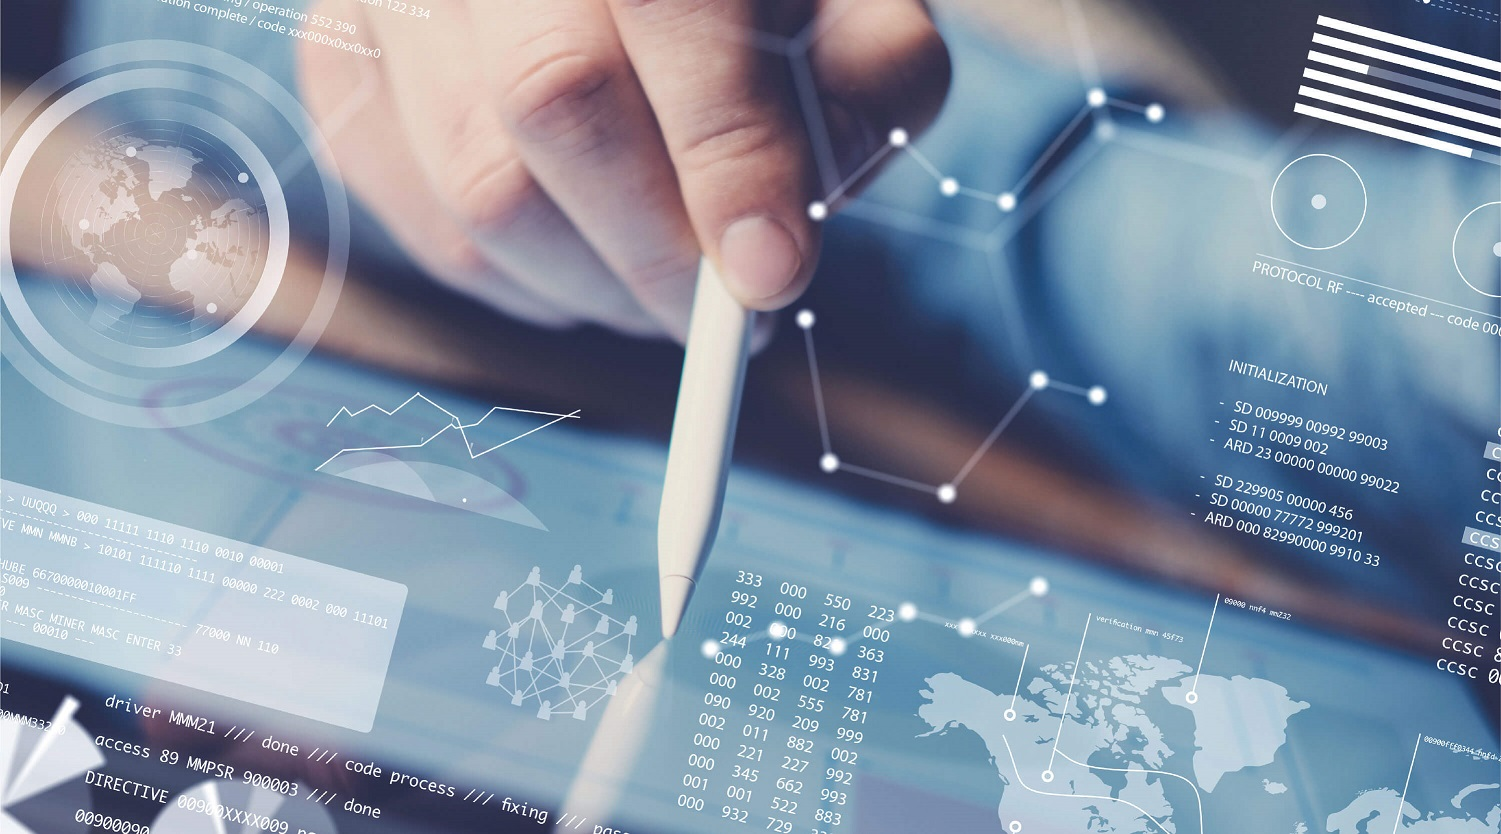 Analytics Outsourcing: Advancing Today's Business Models Through Expertise